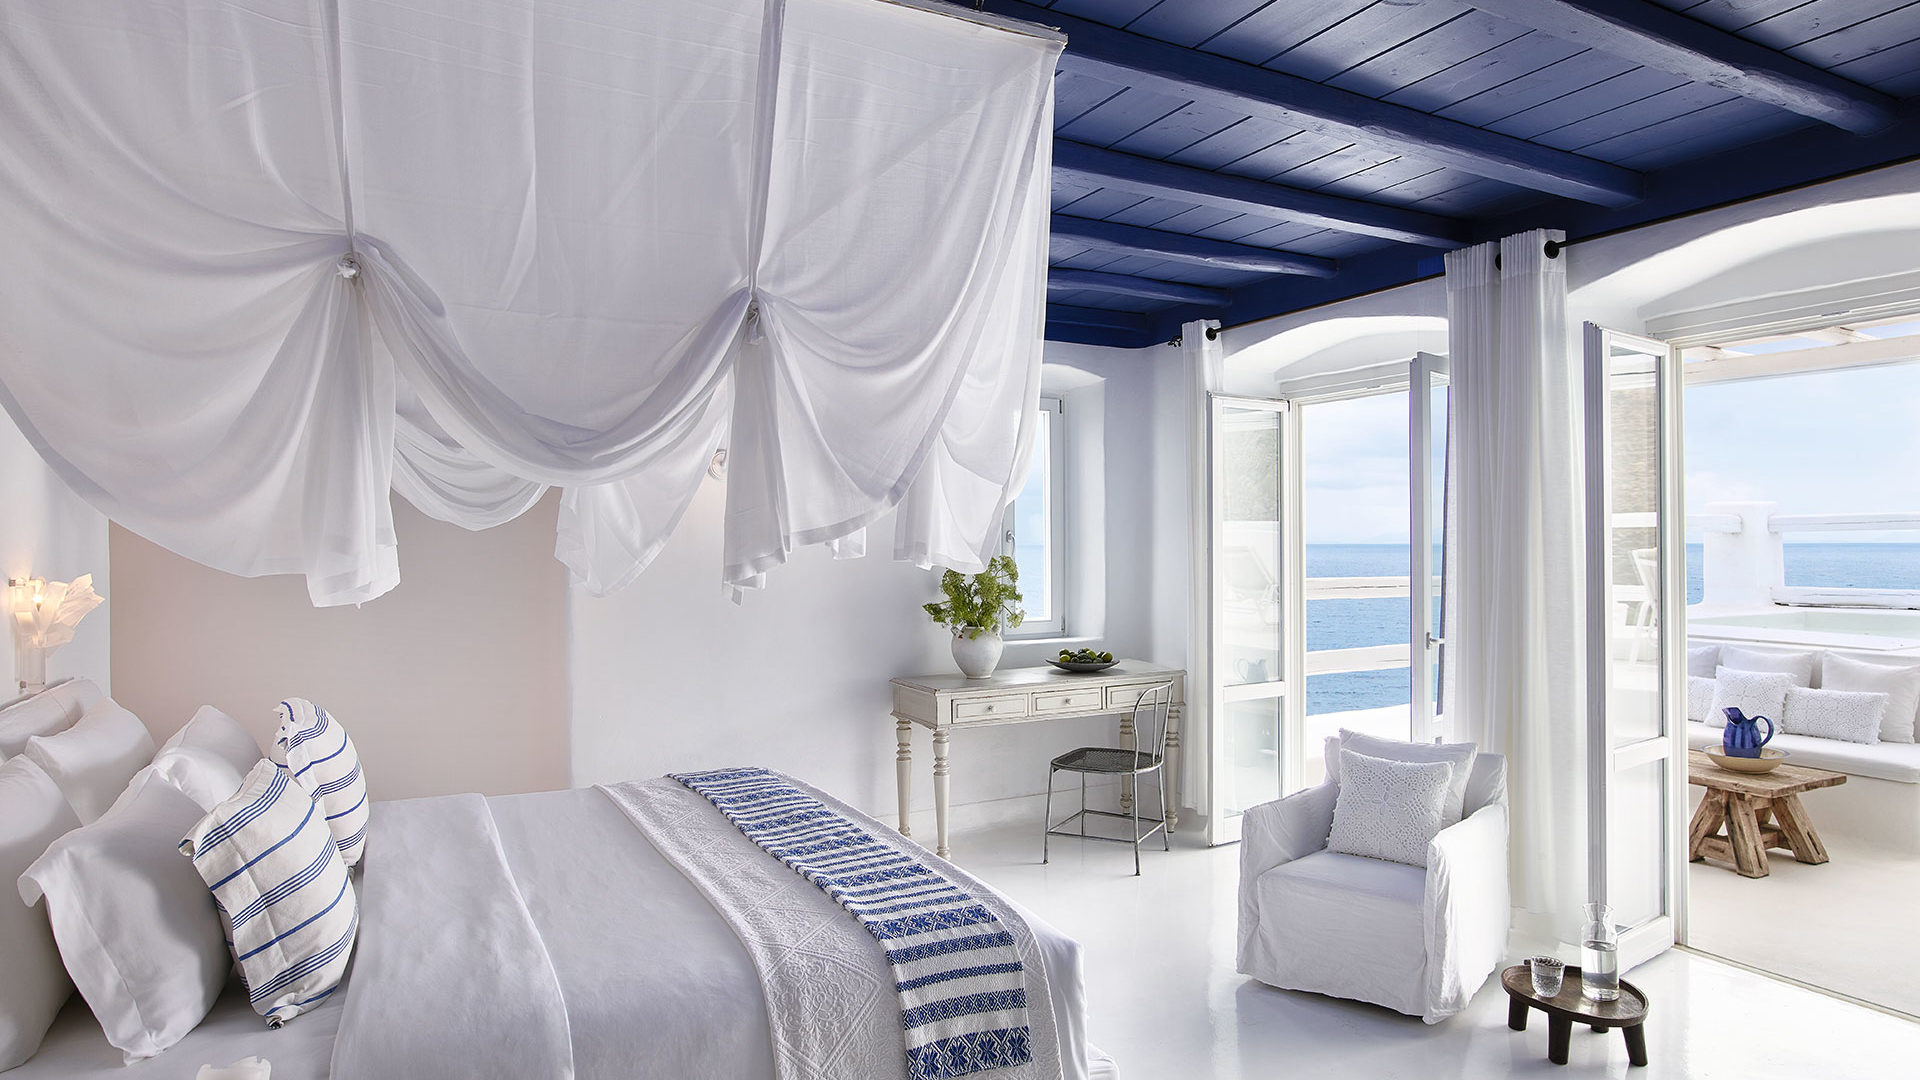 Mykonos_Blu-17-Deep-Blu-Villa,-King-Size-Bed-Facing-the-Aegean_72dpi